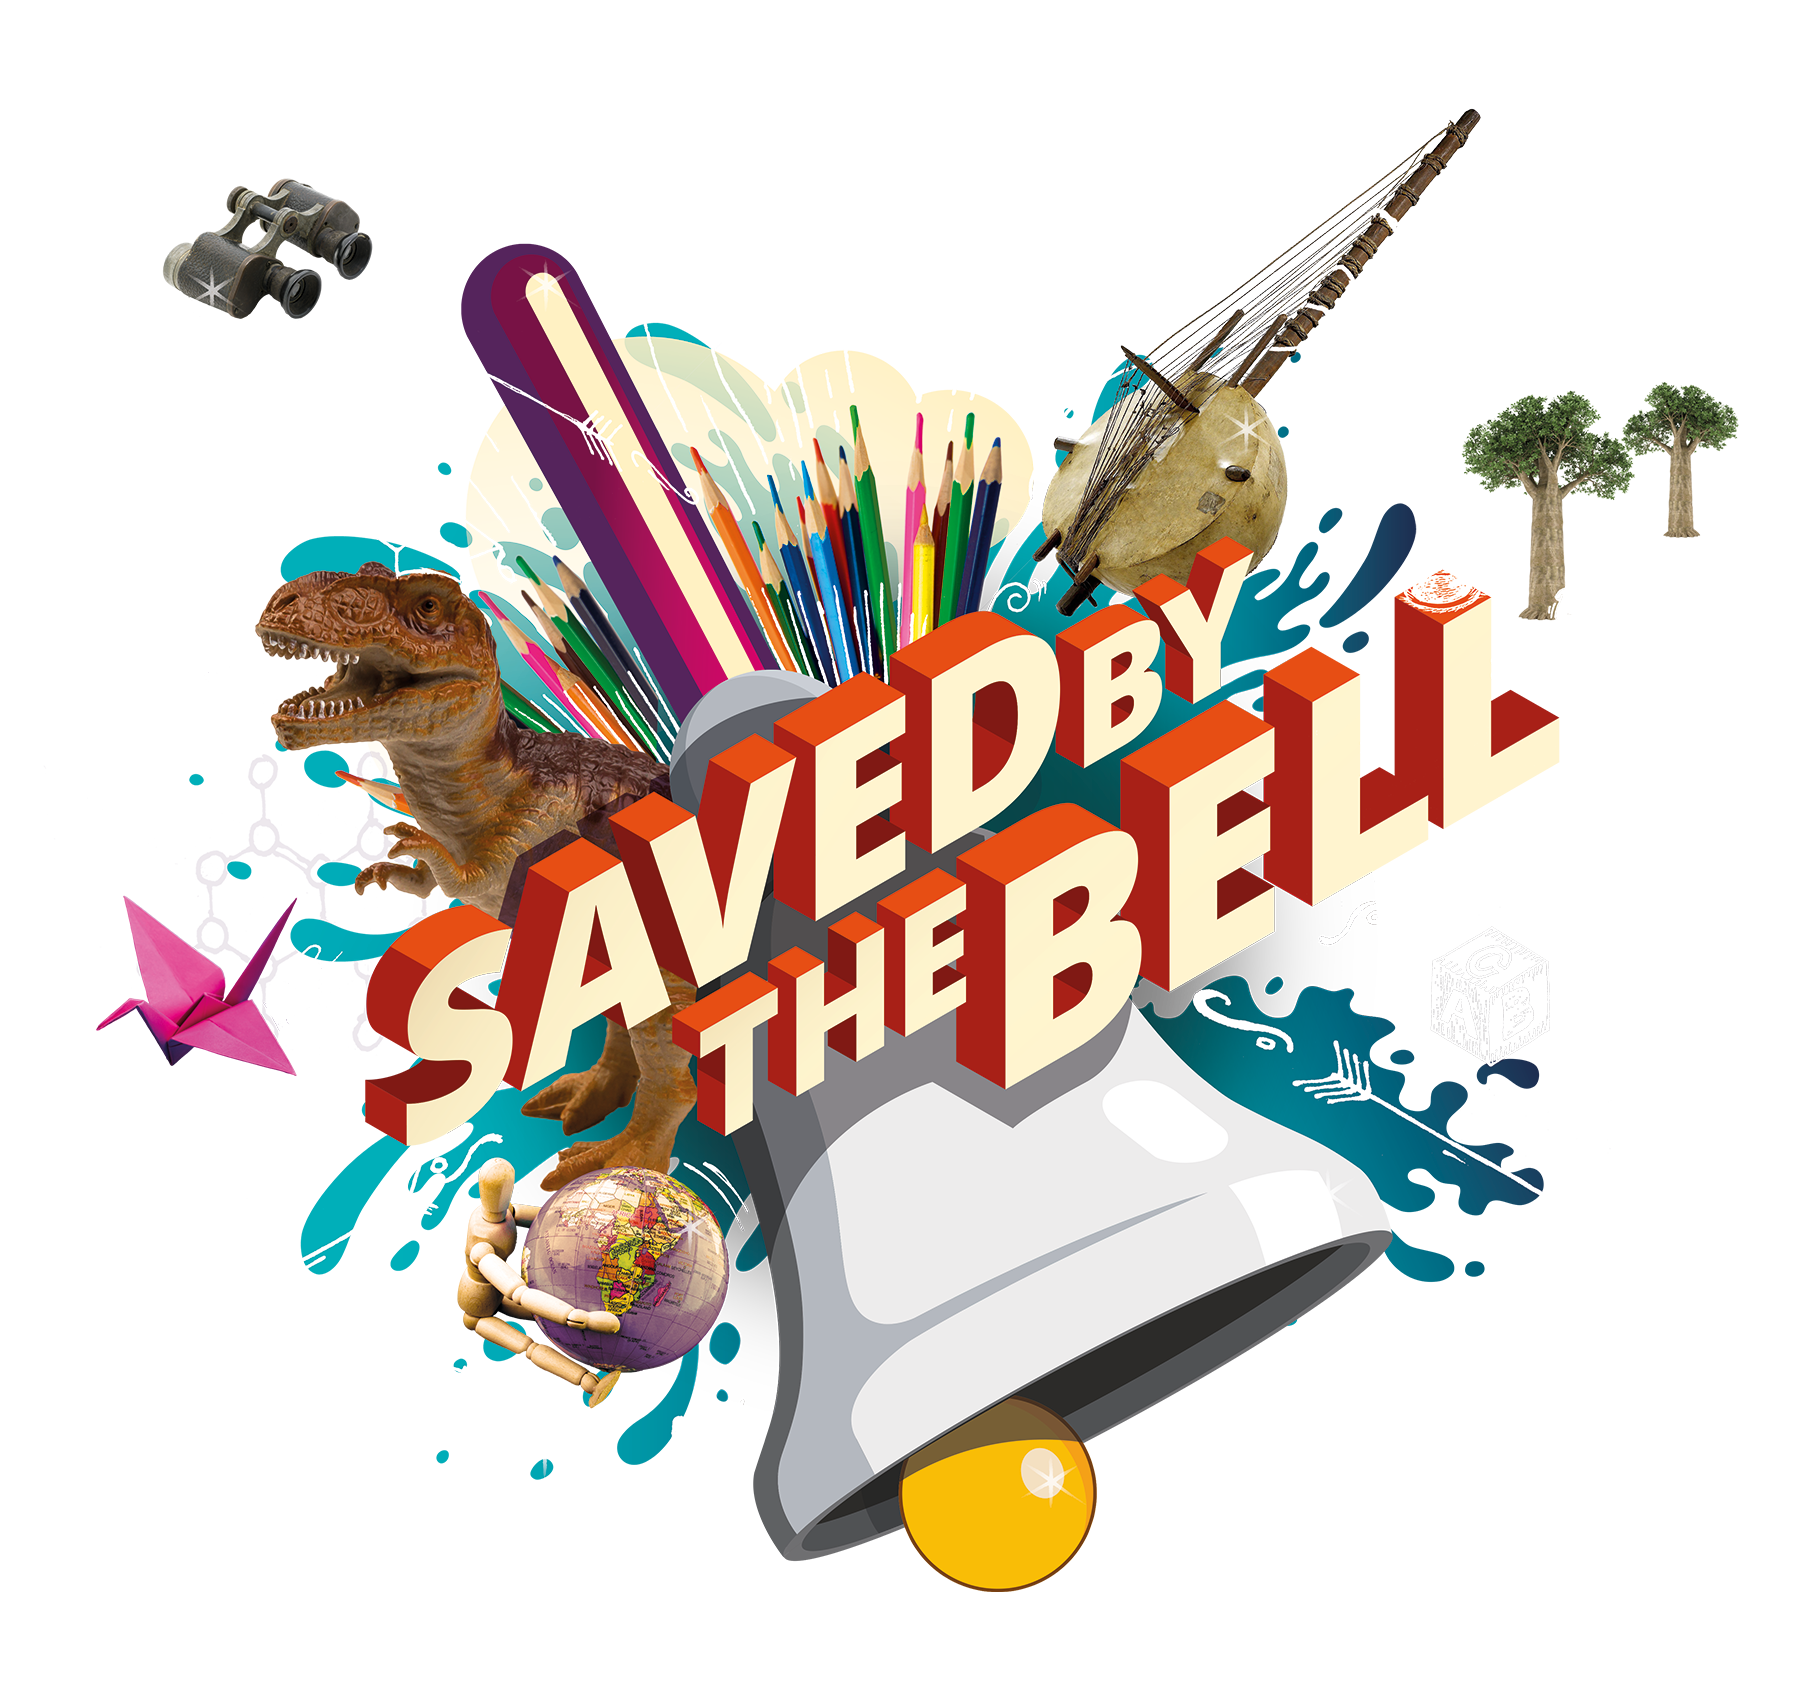 Best Ever Saved By The Bell Design